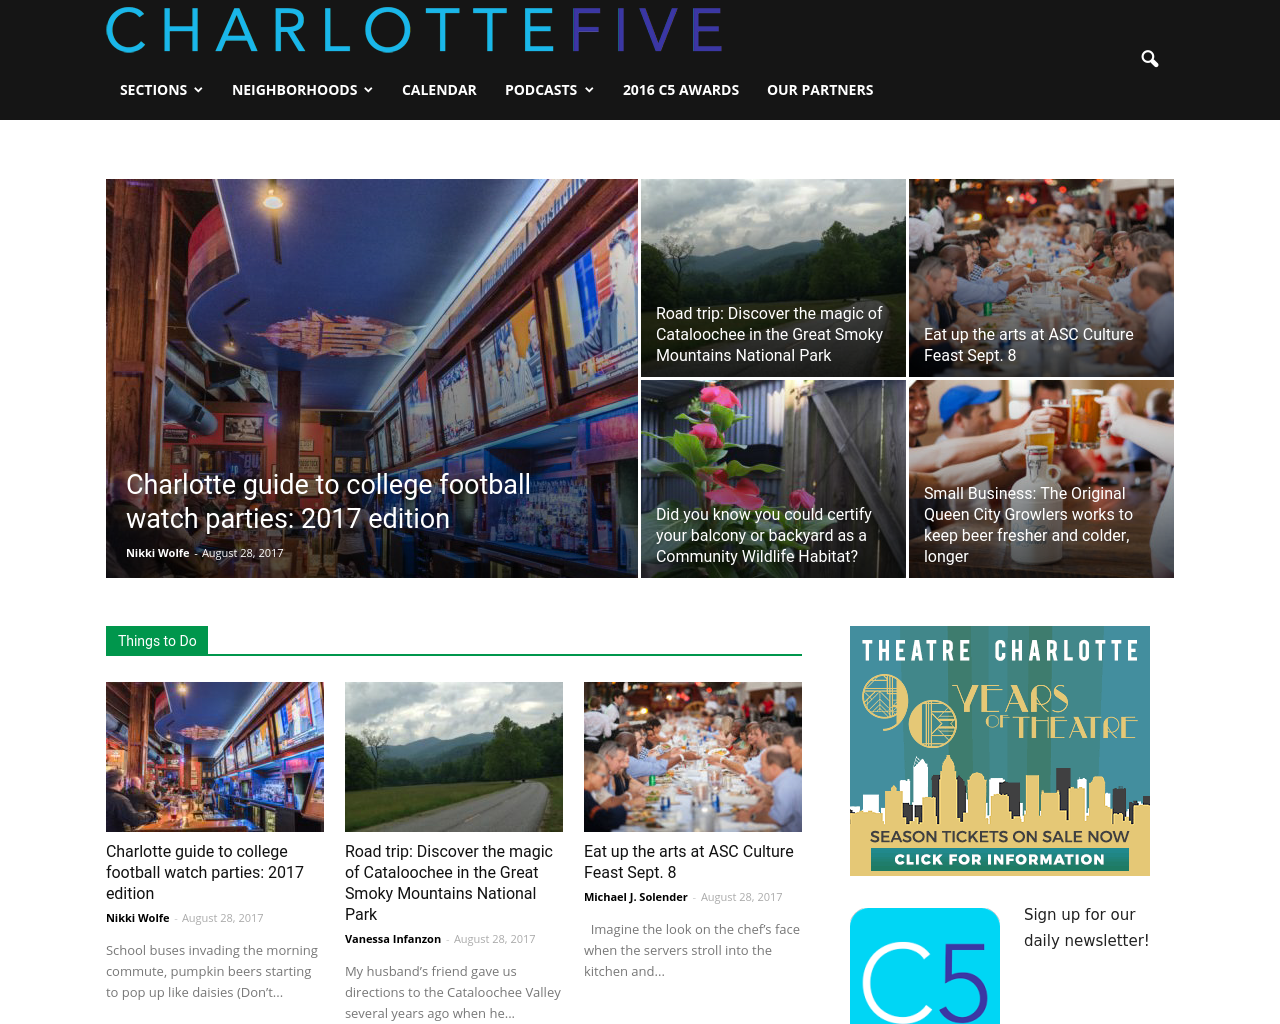 CHARLOTTEFIVE-Advertising-Reviews-Pricing